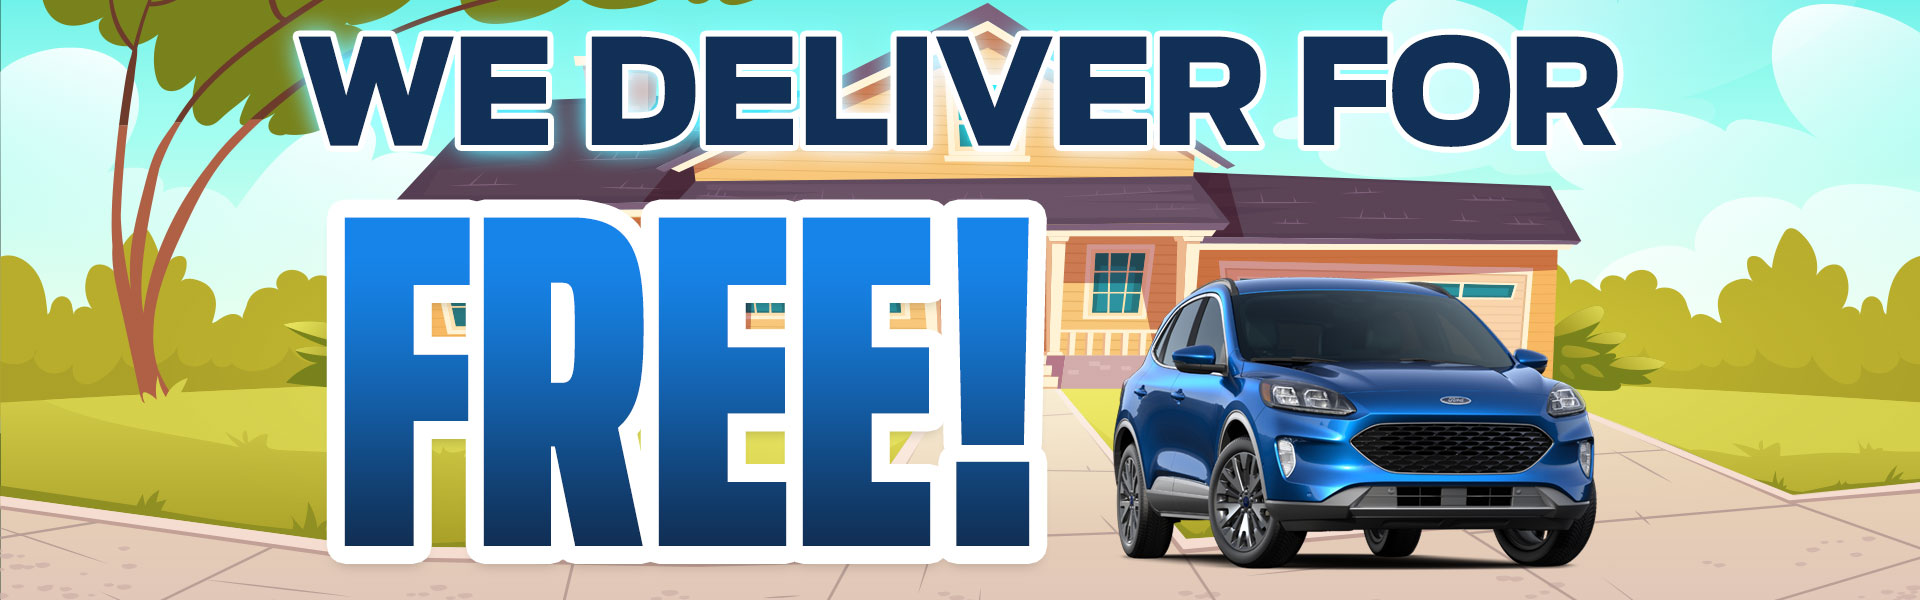 We Deliver For Free!